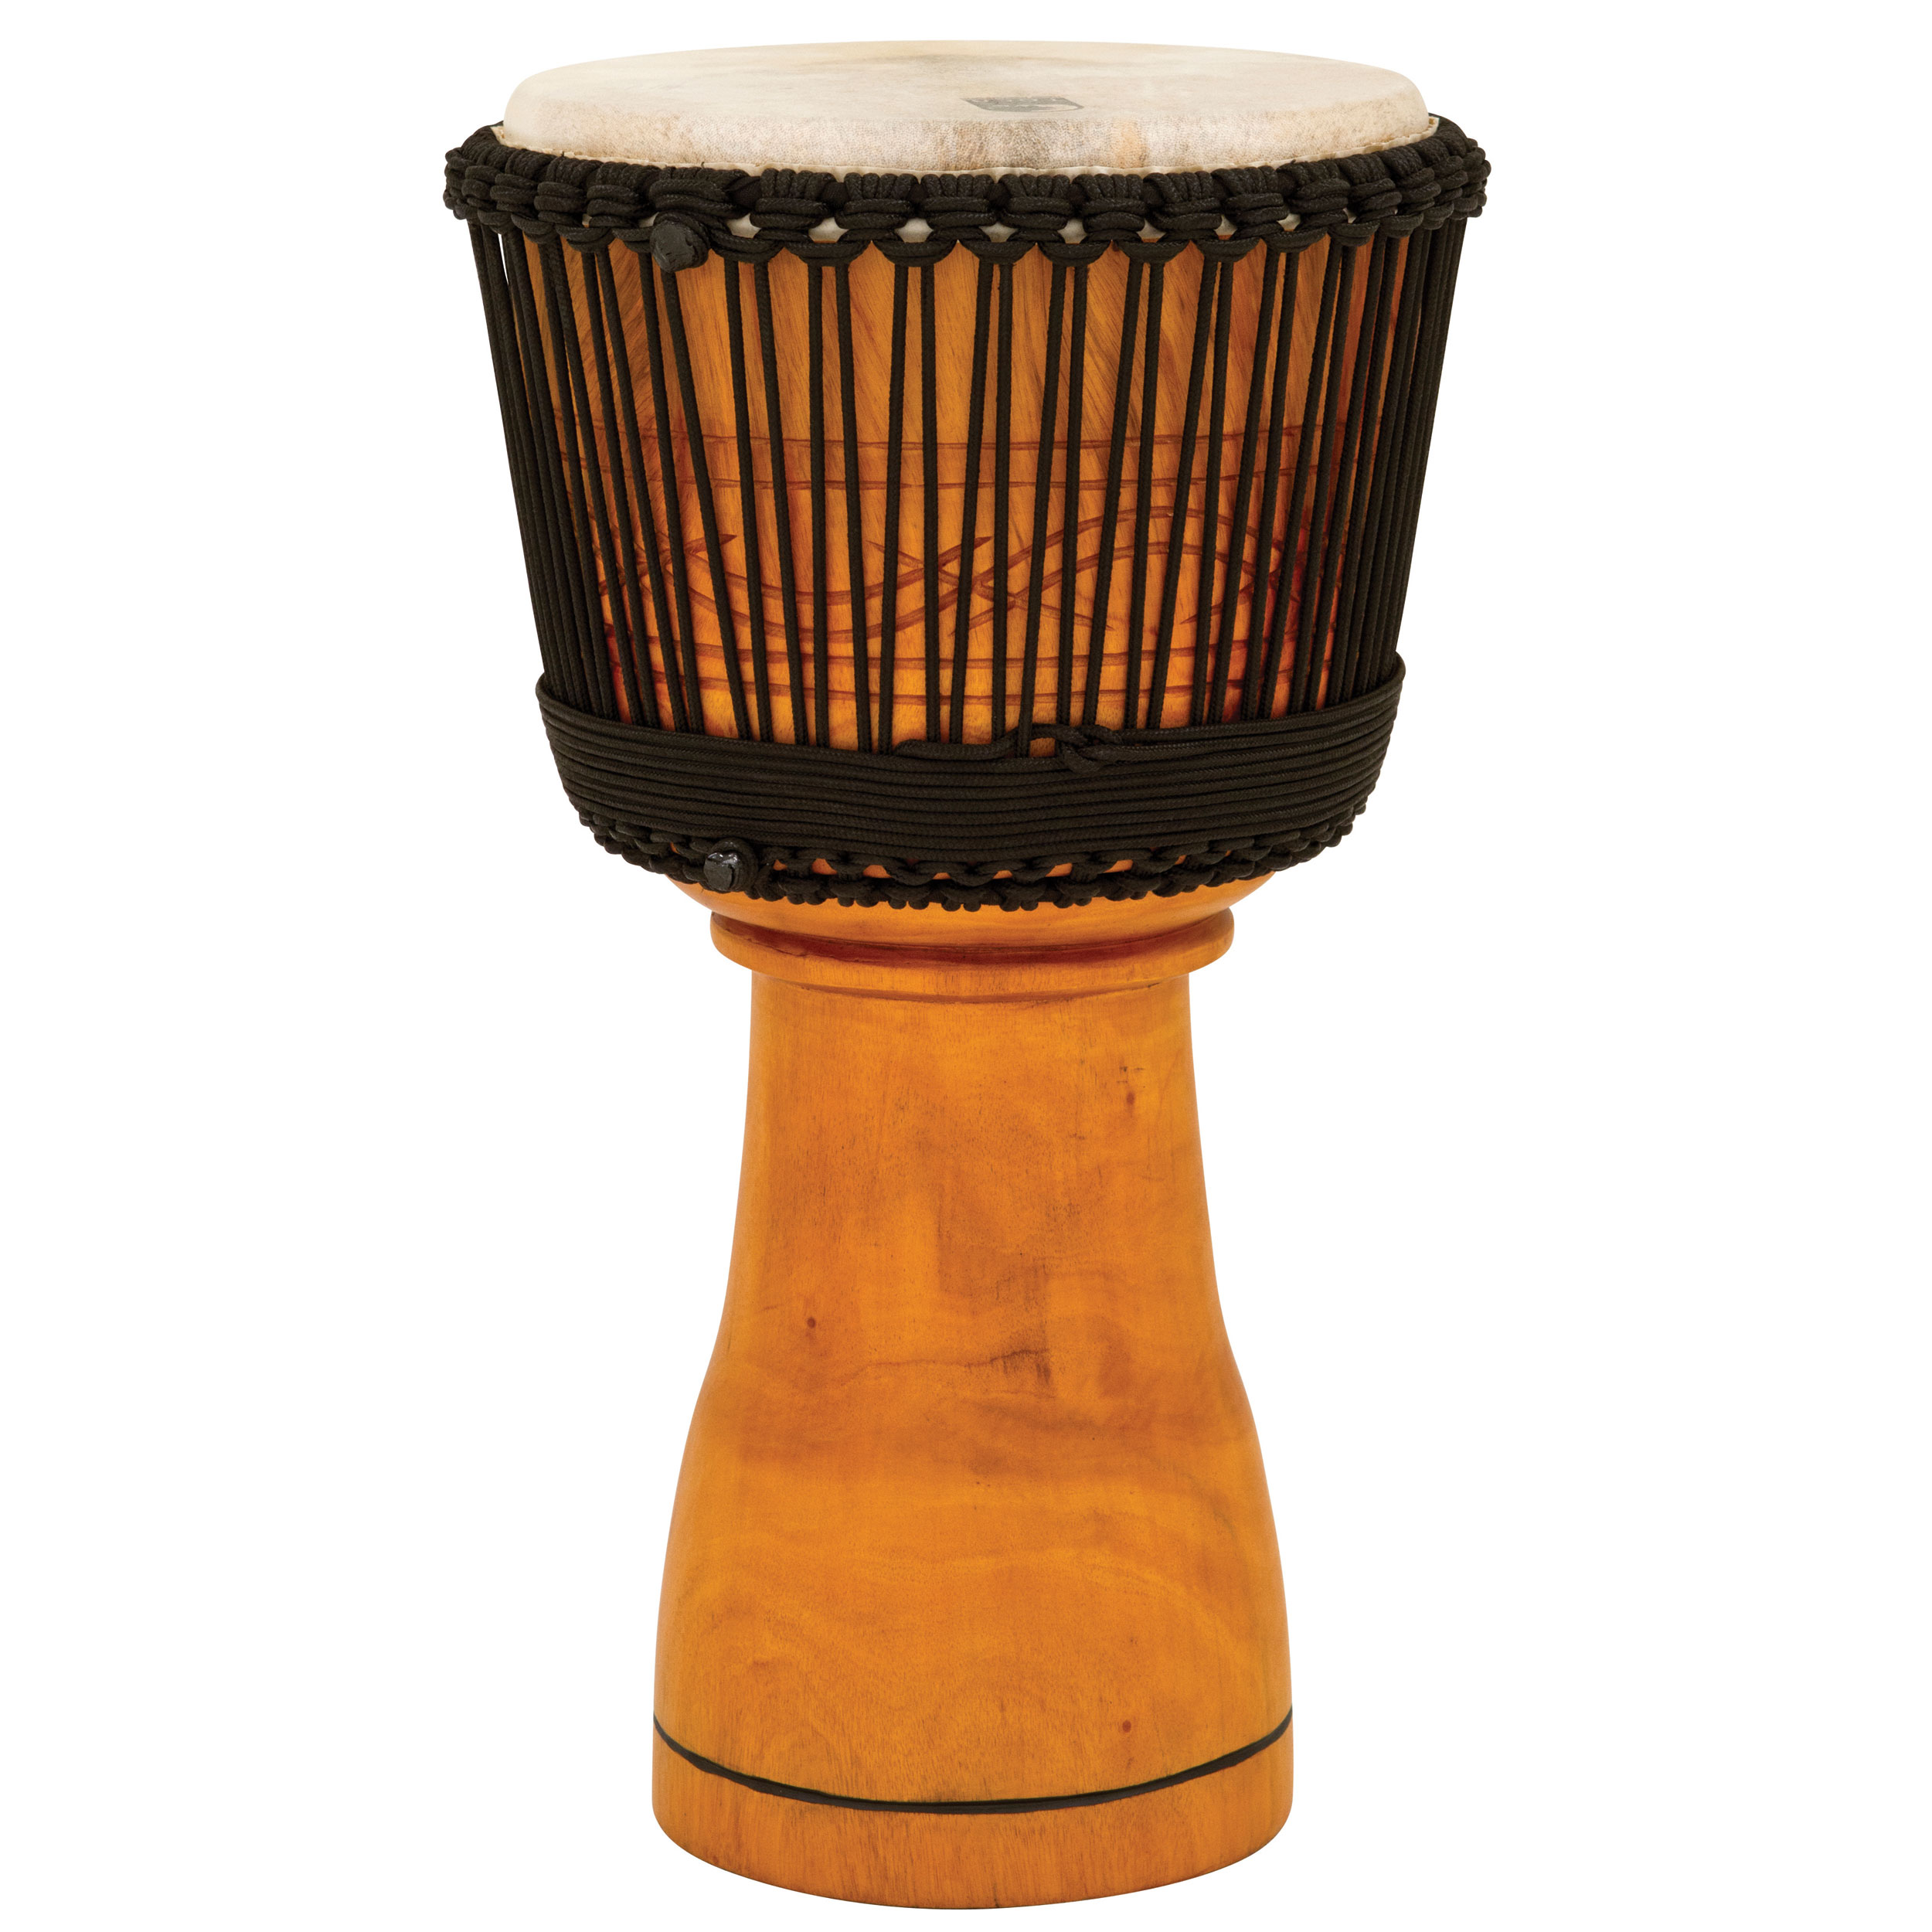 "Toca 12"" Master Series Rope-Tuned Wood Djembe"